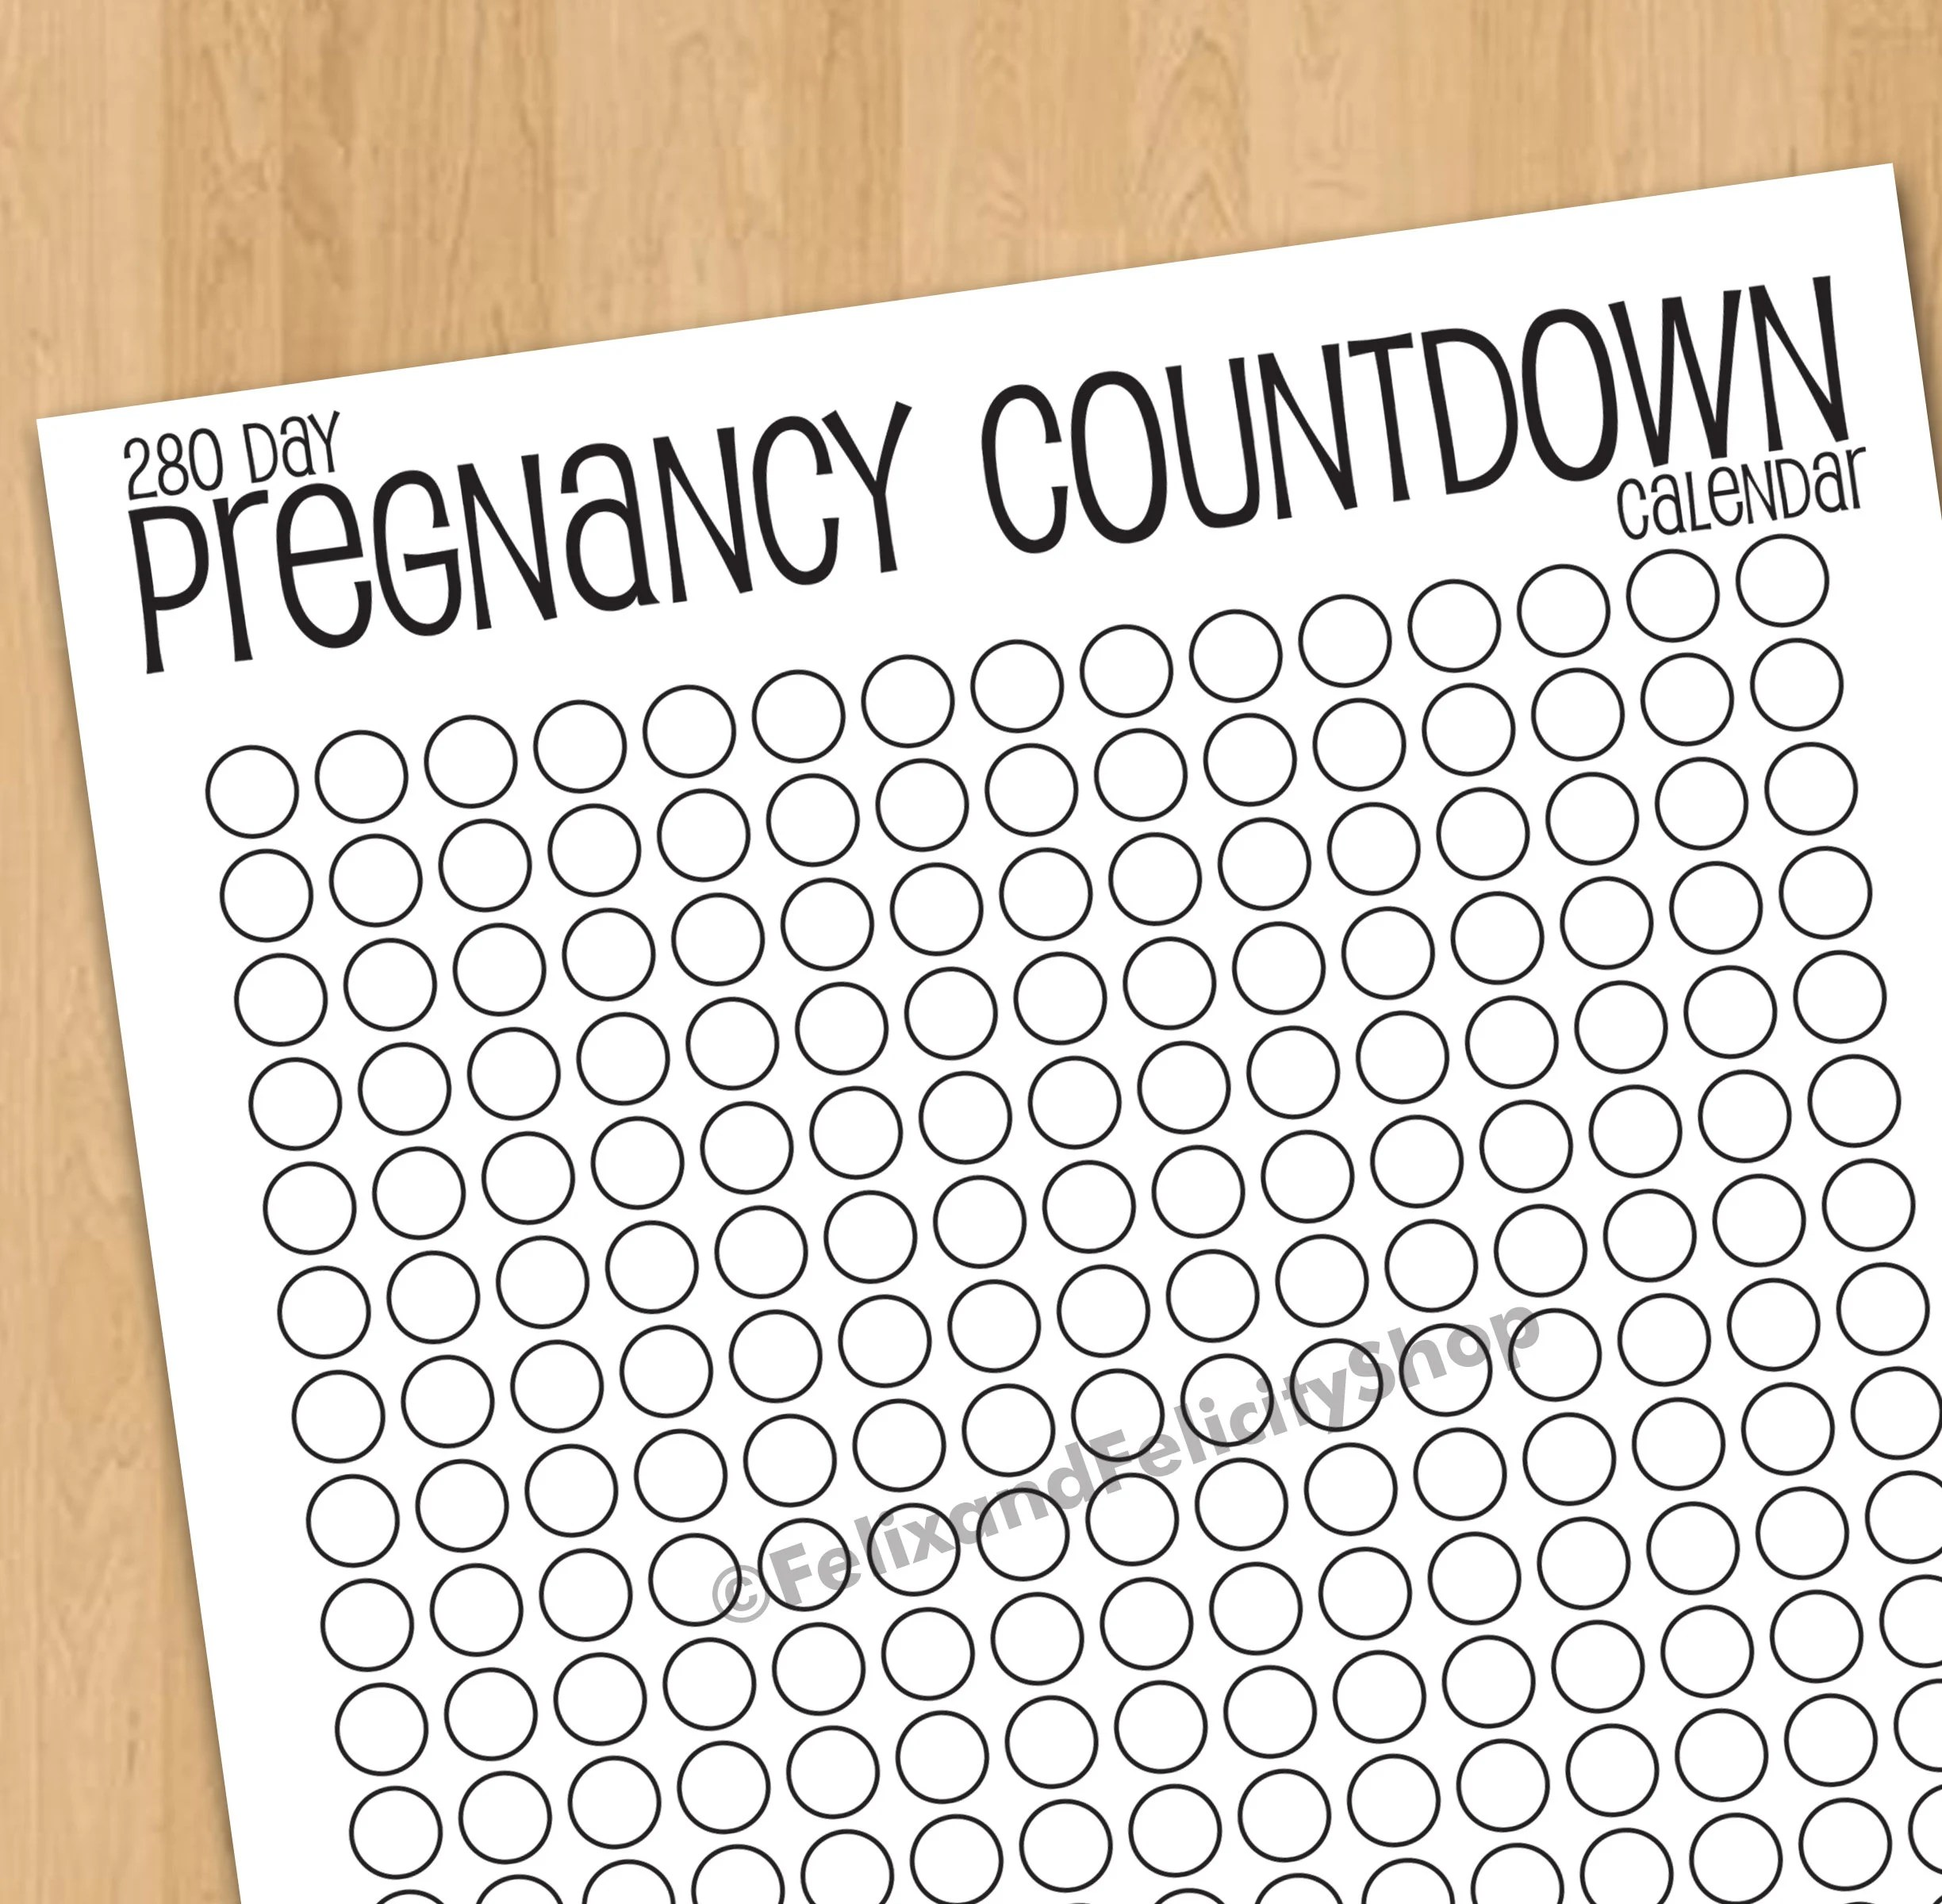 pregnancy calendar due date day by day - Apmayssconstruction